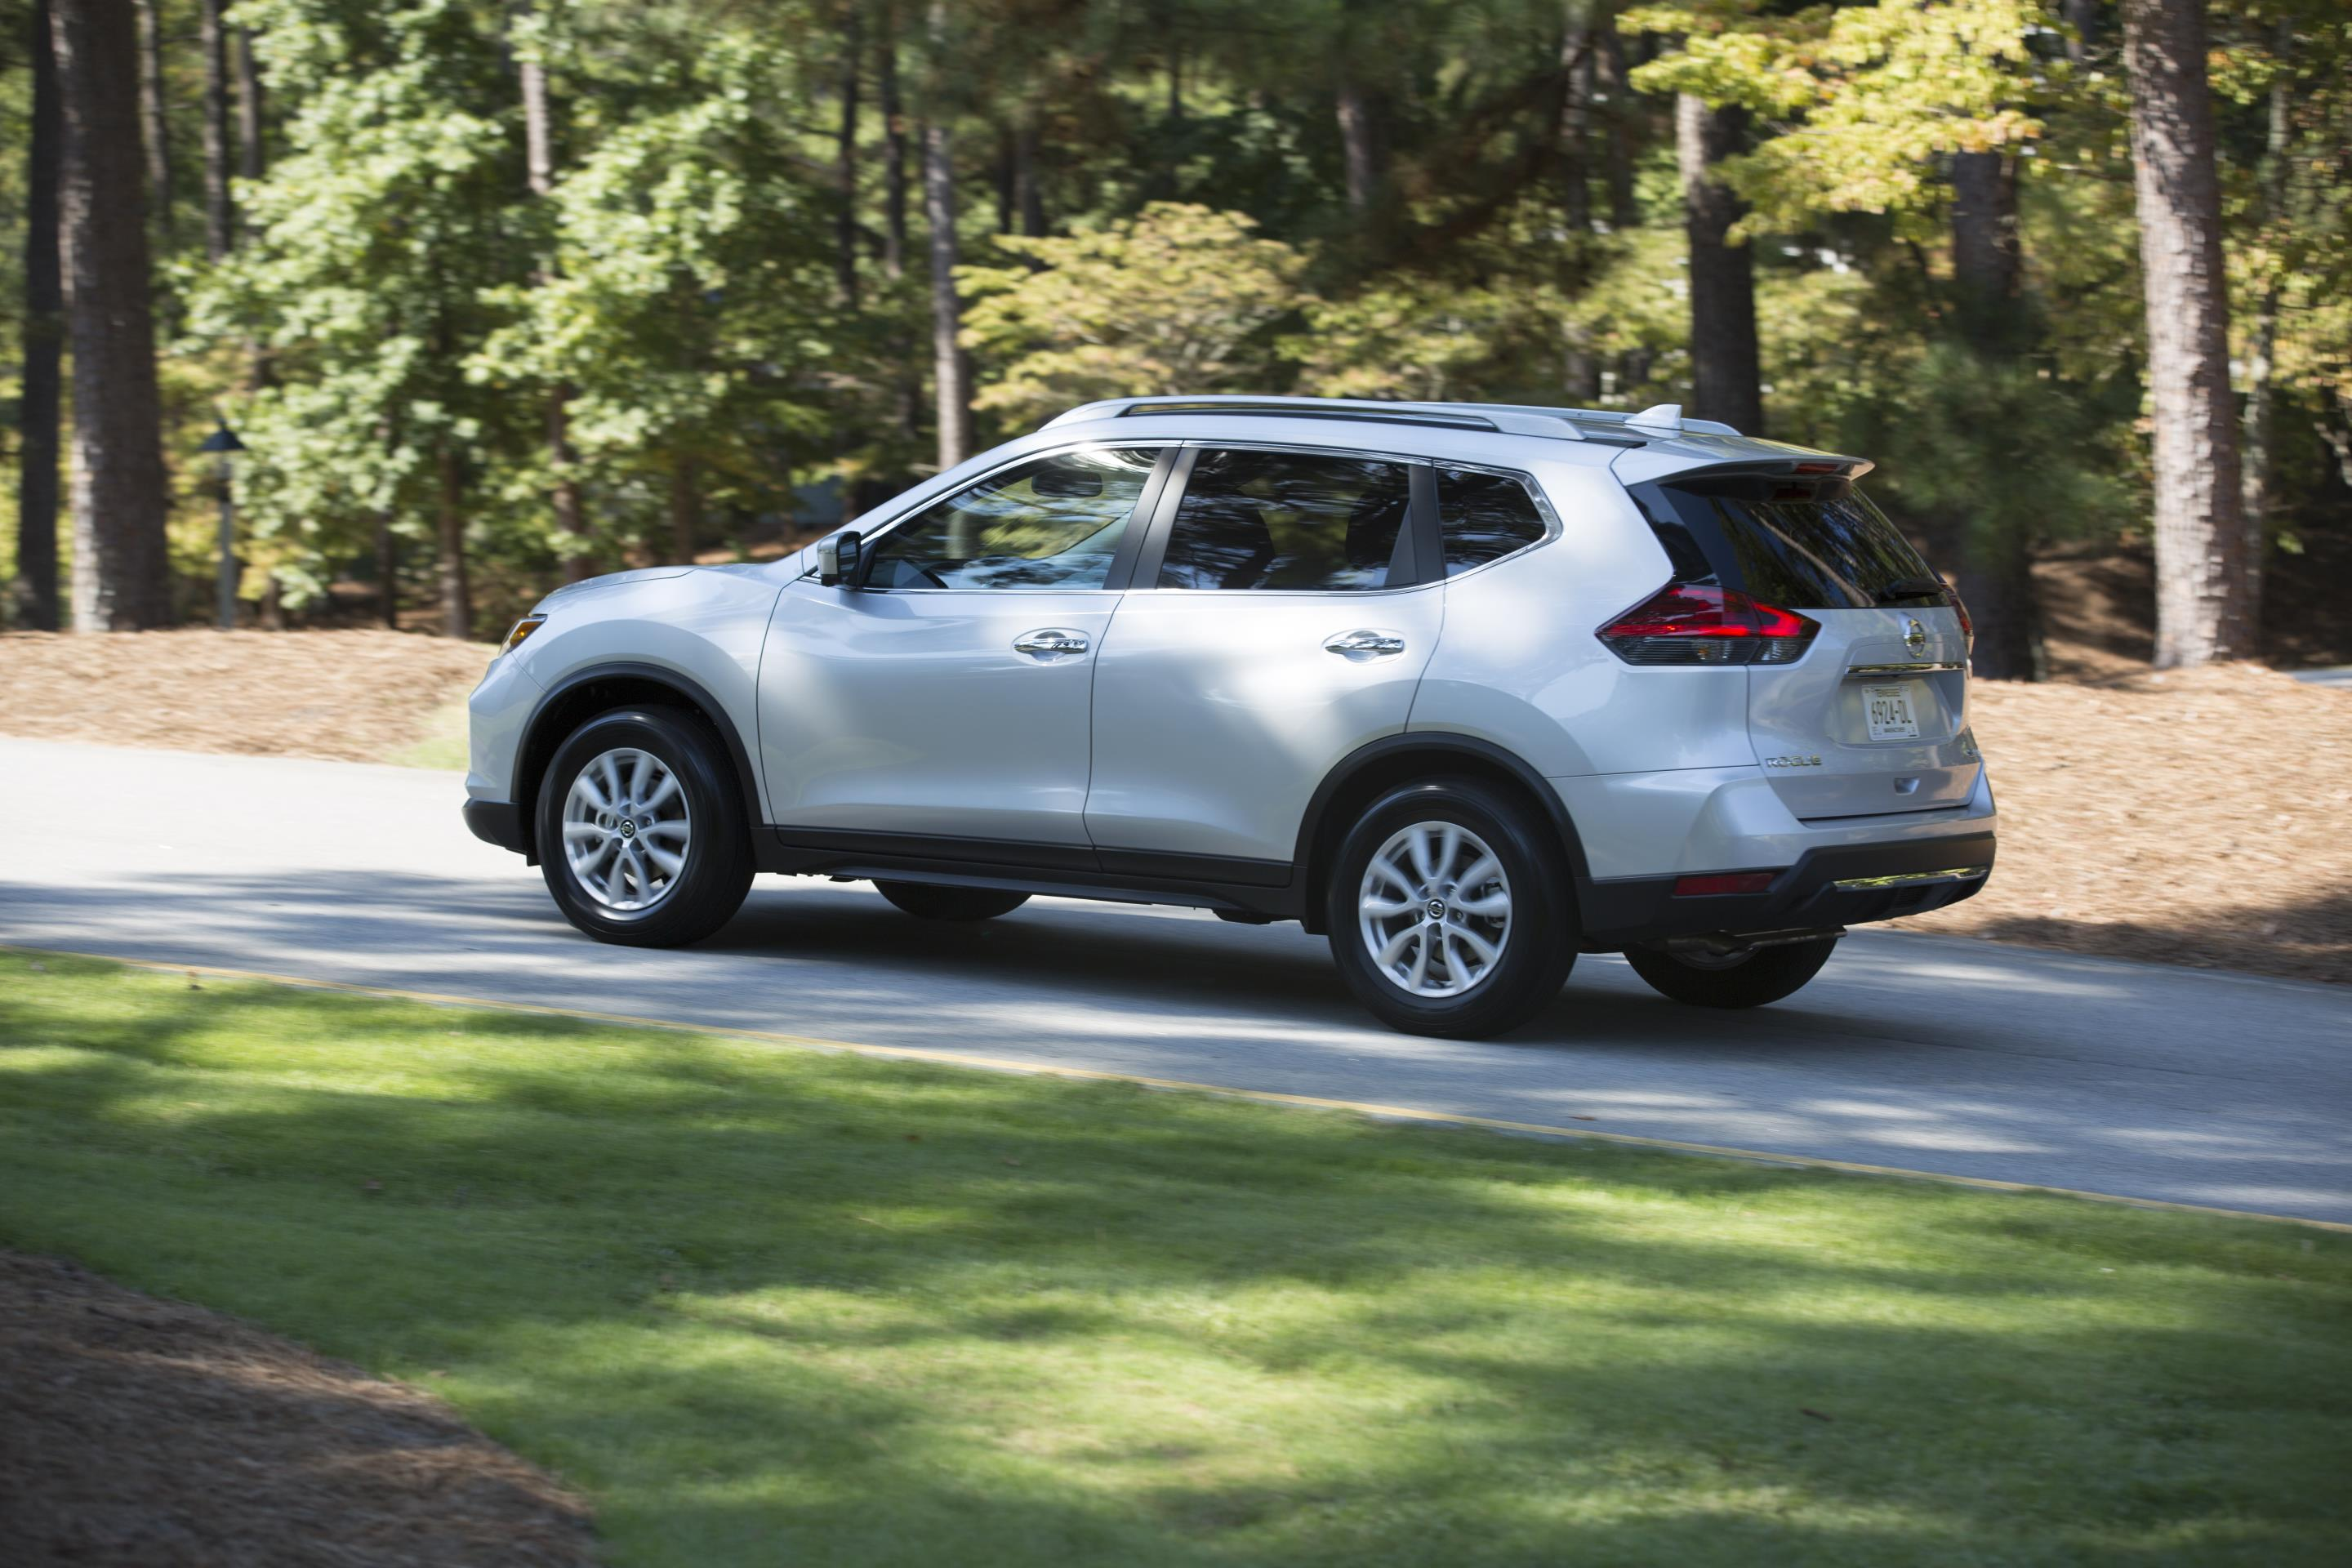 Nissan Rogue, one of Nissan's top selling vehicles in calendar year 2017